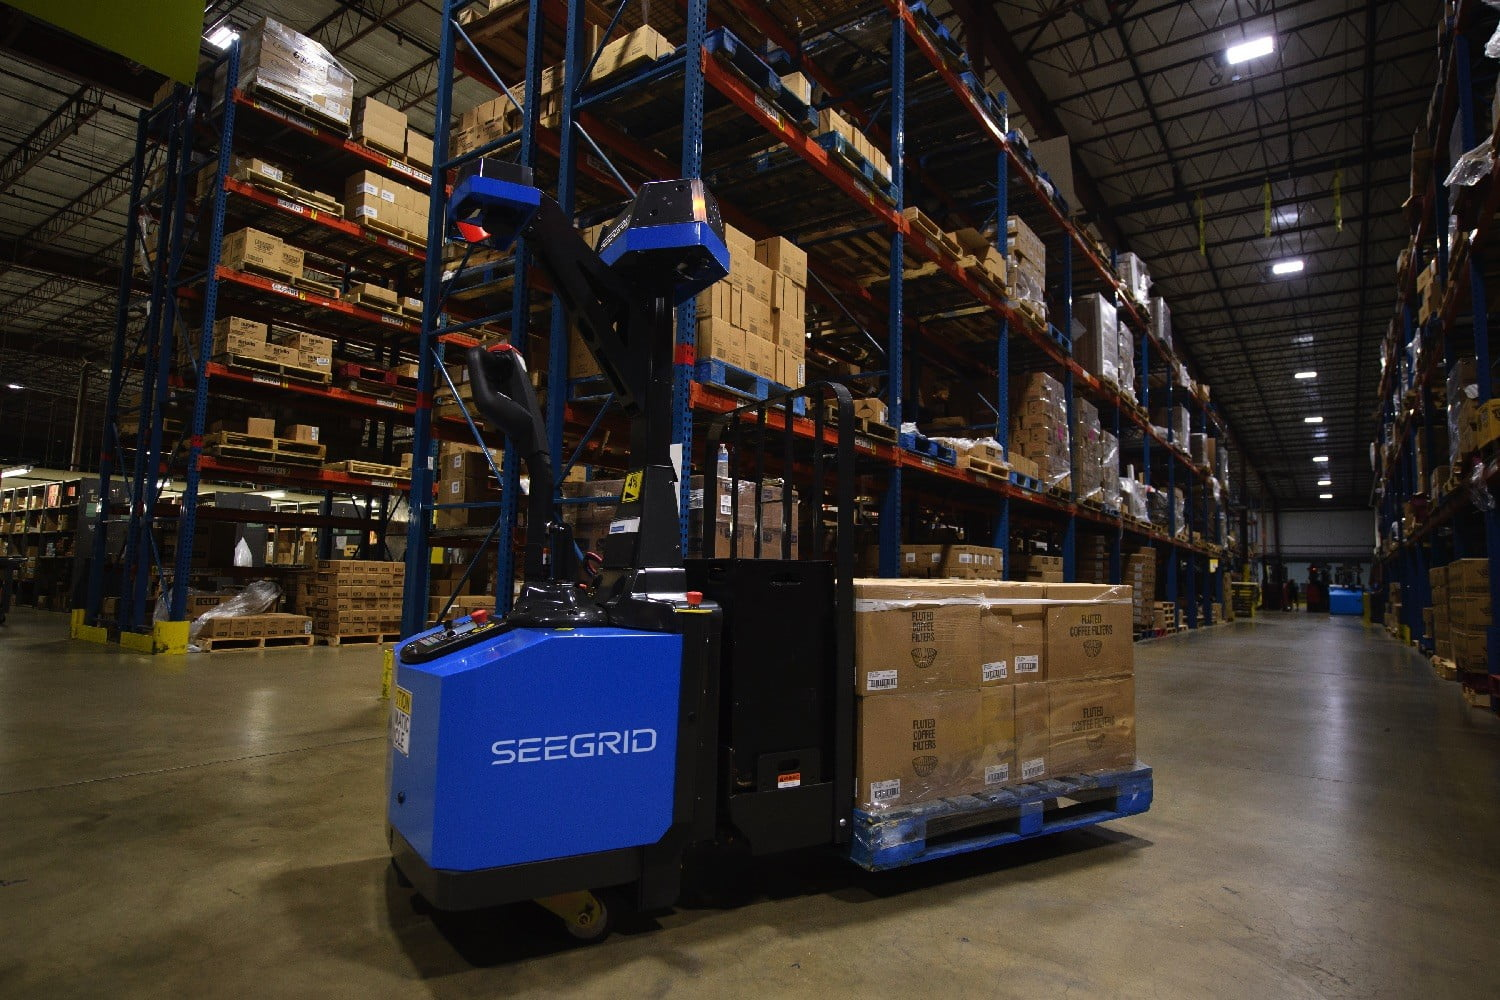 Self Driving Forklift Takes The Human Factor Out Of Warehouse Work